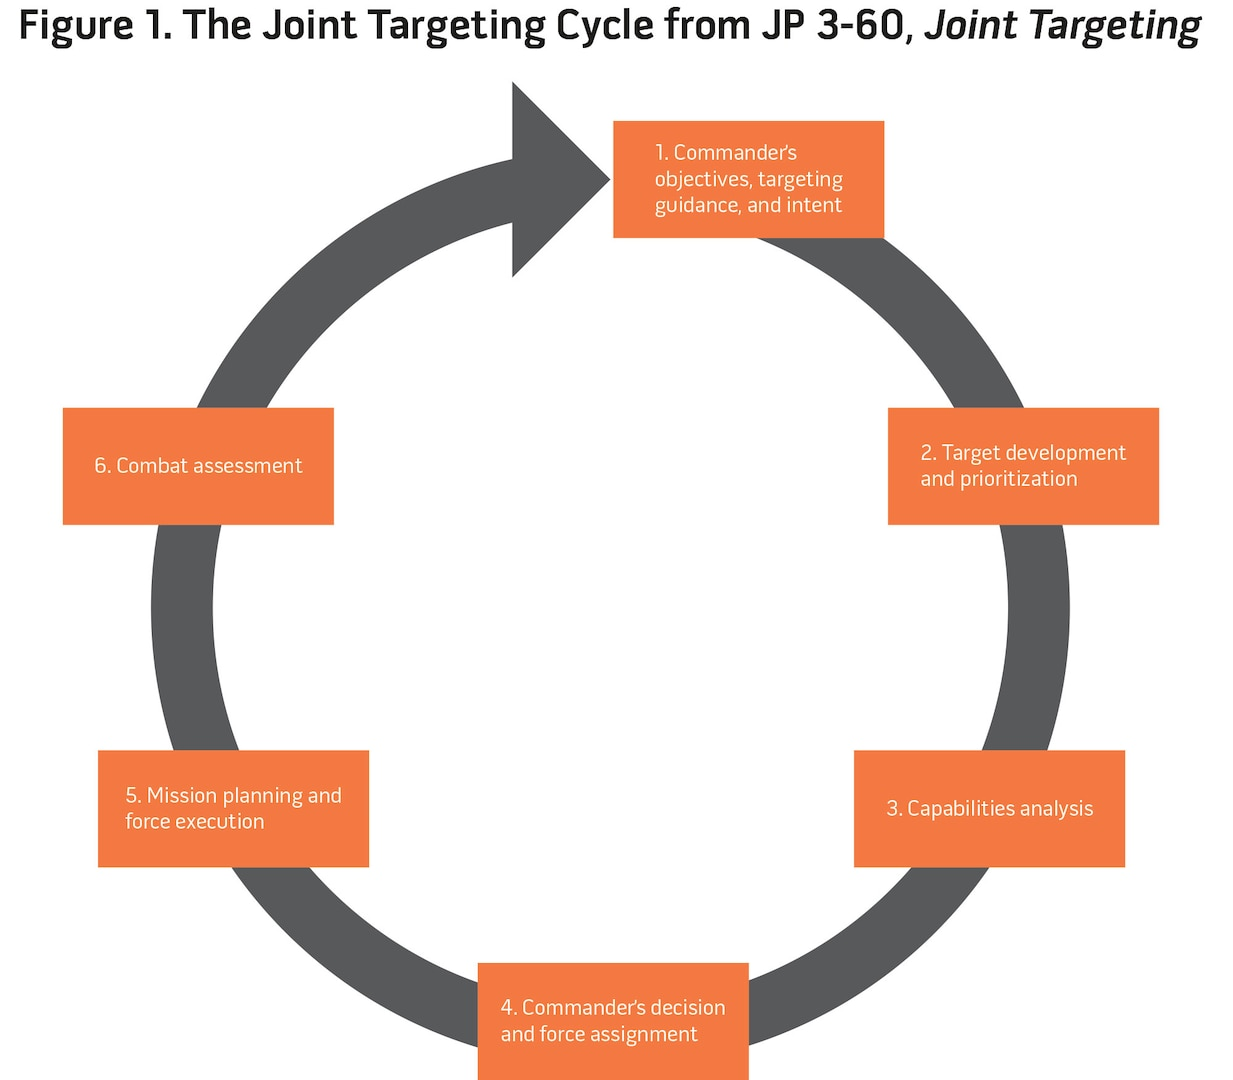 Figure 1. The Joint Targeting Cycle from JP 3-60, Joint Targeting